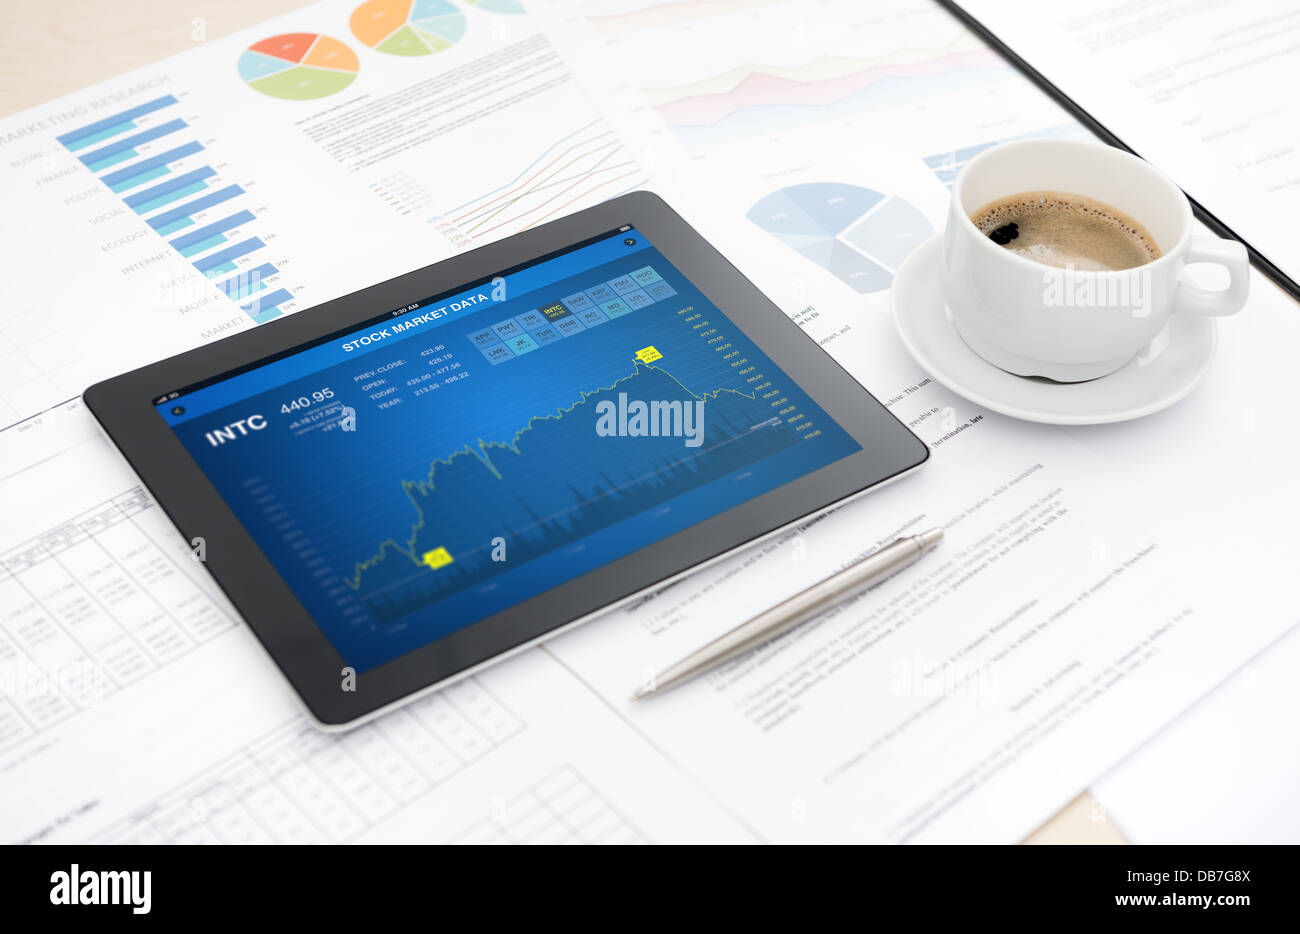 Modern digital tablet with stock market data application on a desk with some papers and documents, pen and a cup - Stock Image